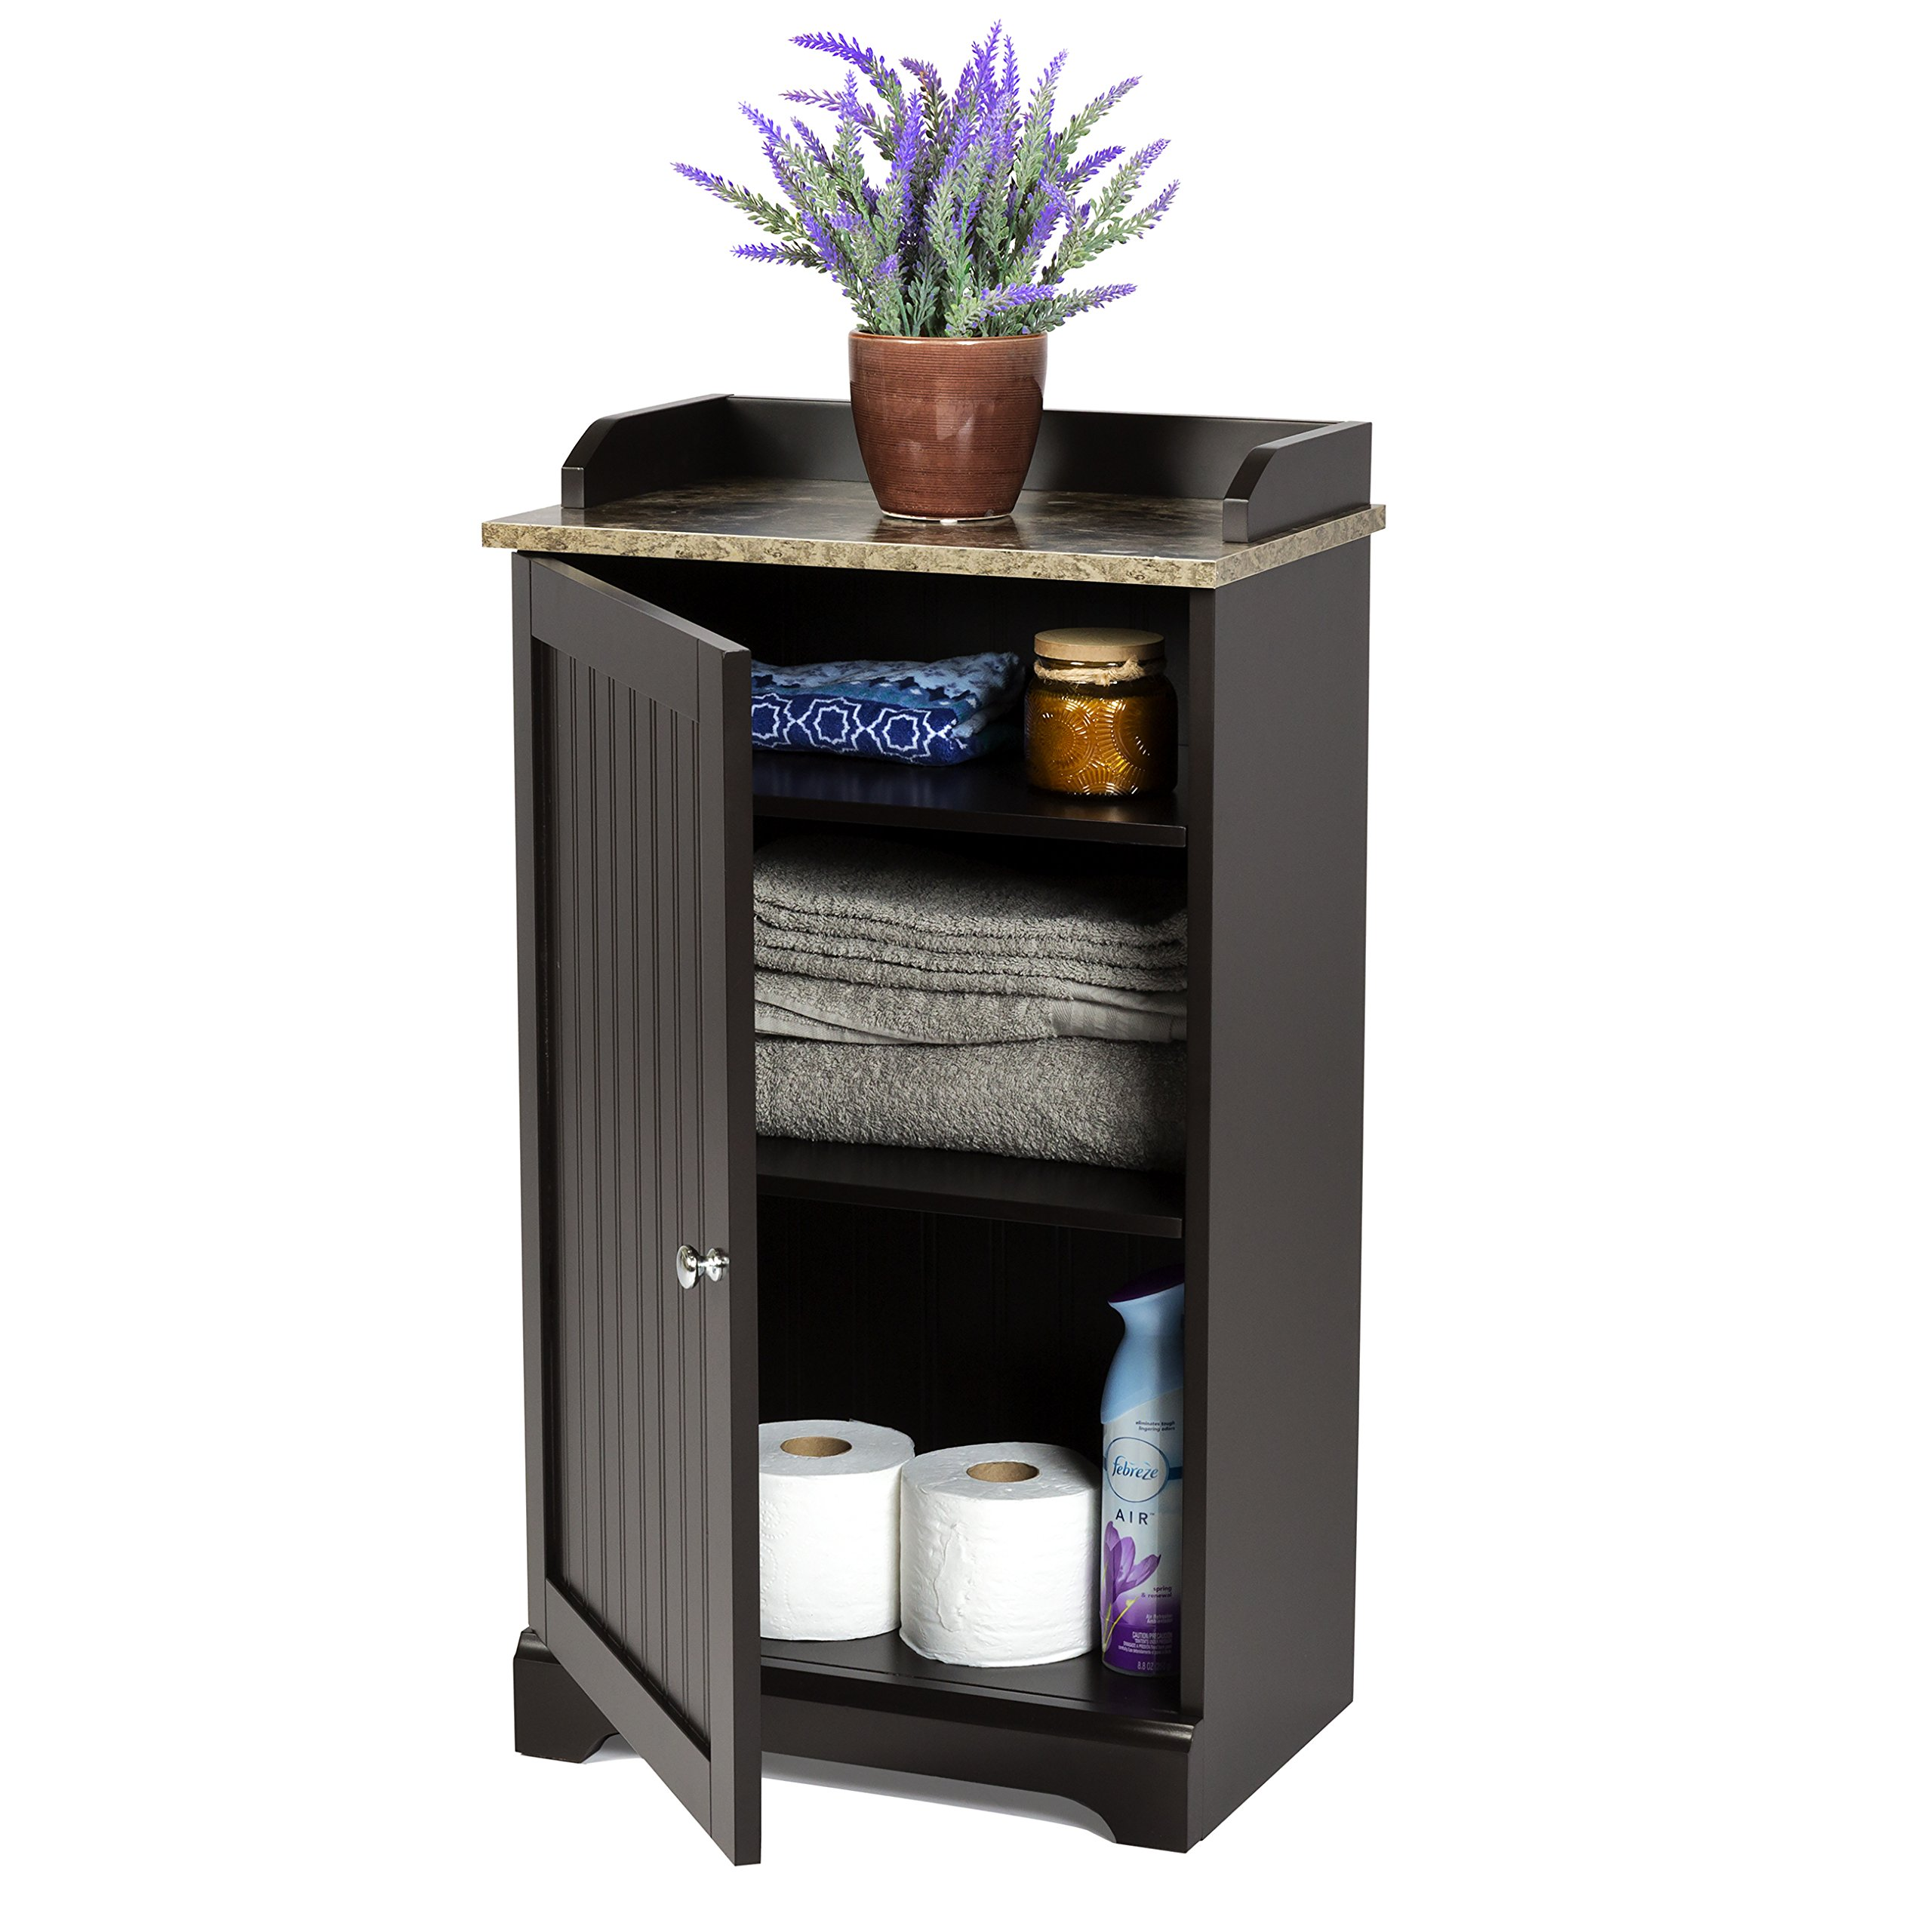 Best Choice Products Modern Contemporary Floor Cabinet Storage for Linens and Toiletries, Espresso by Best Choice Products